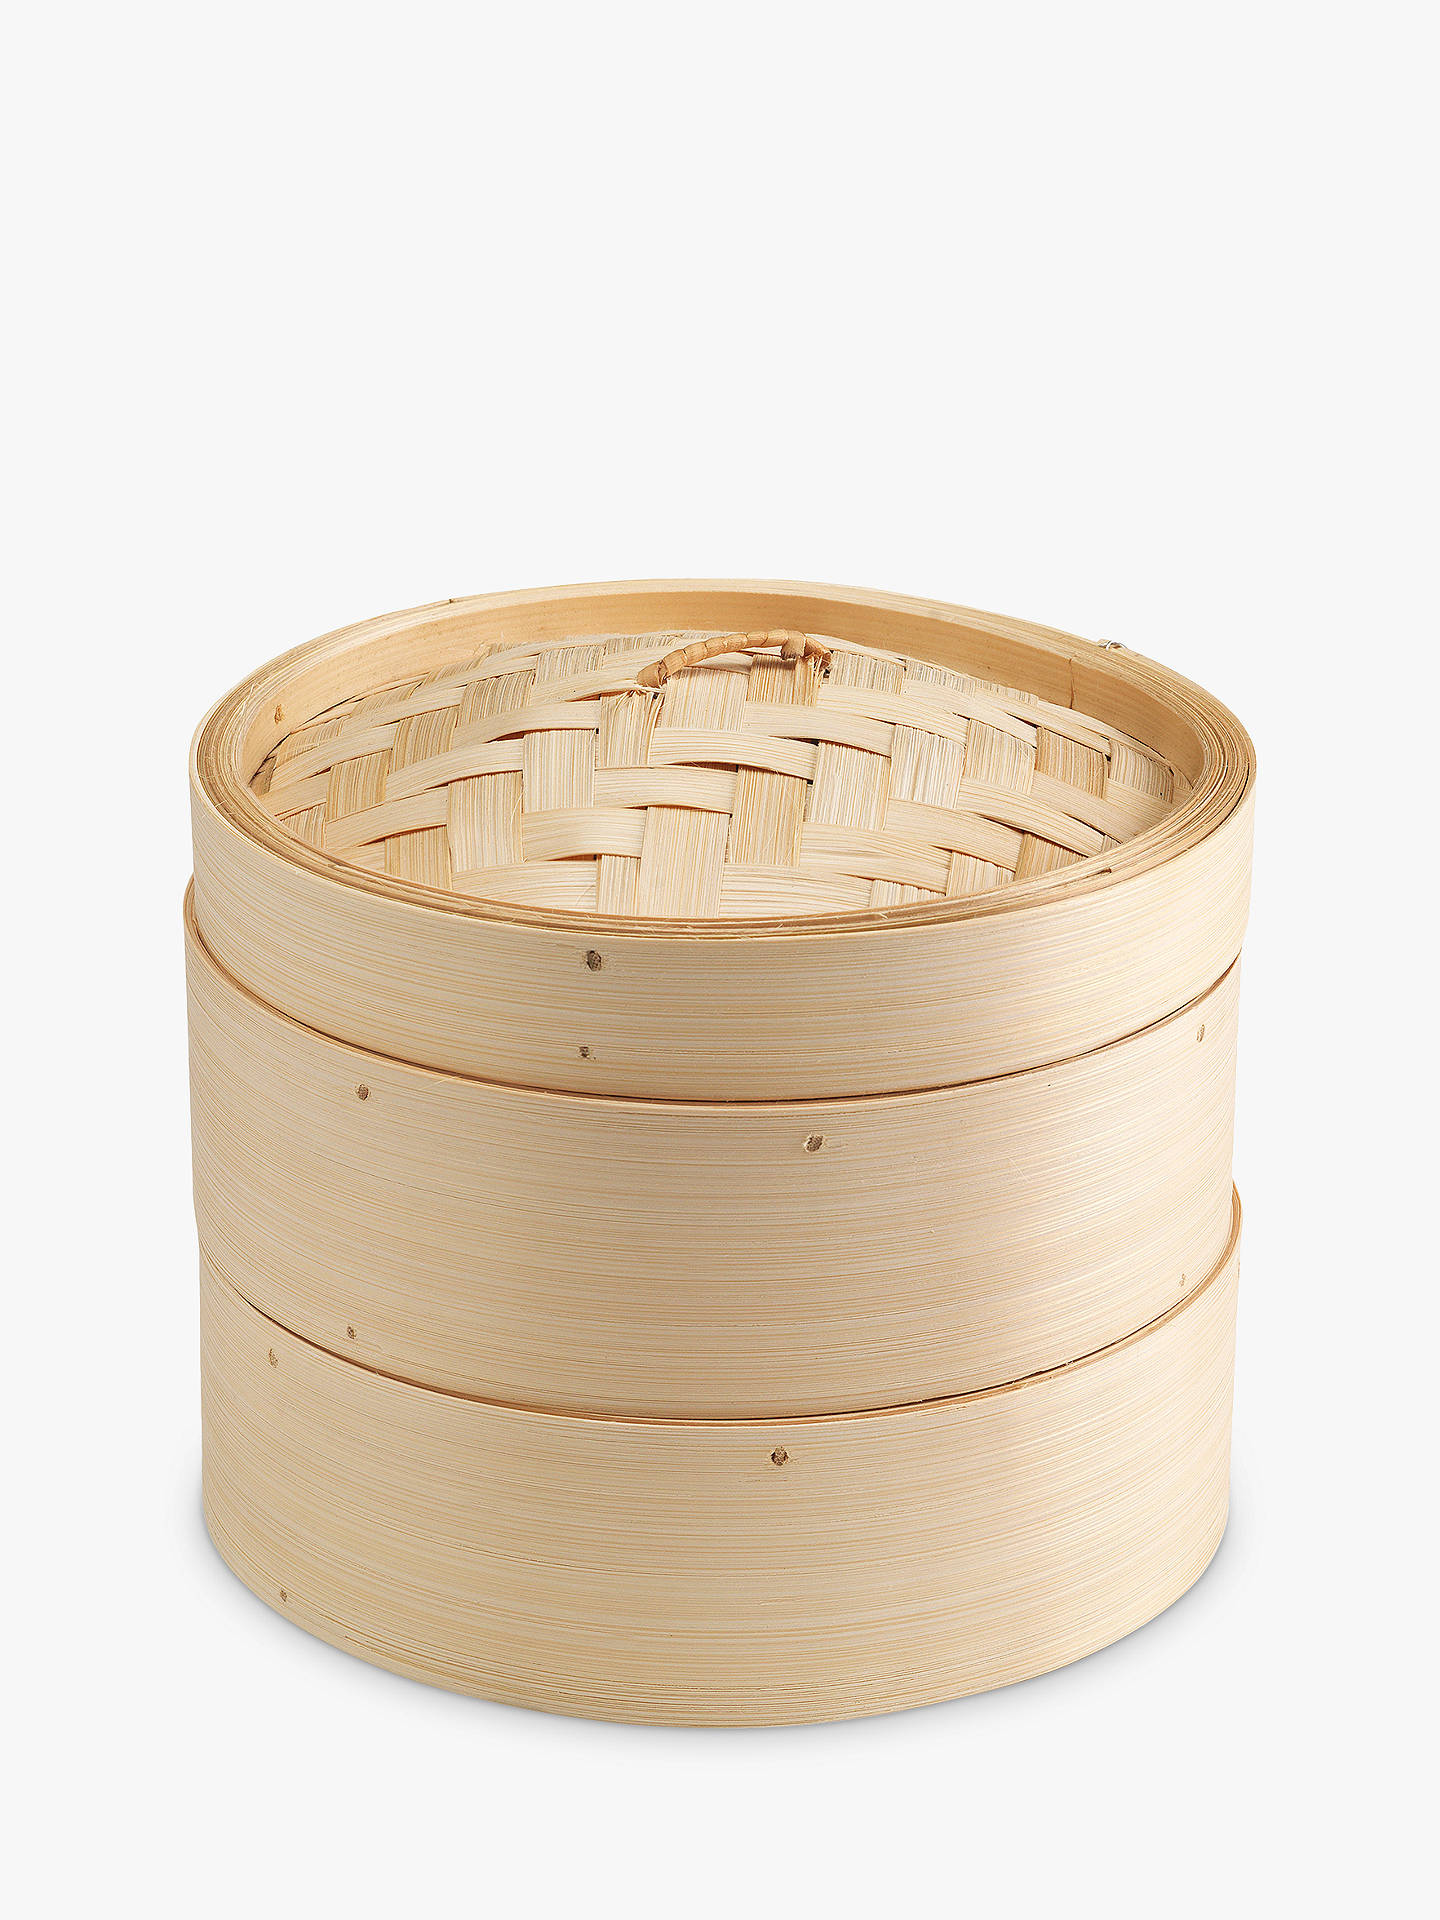 BuyKen Hom 2-Tier Bamboo Steamer, 20cm Online at johnlewis.com